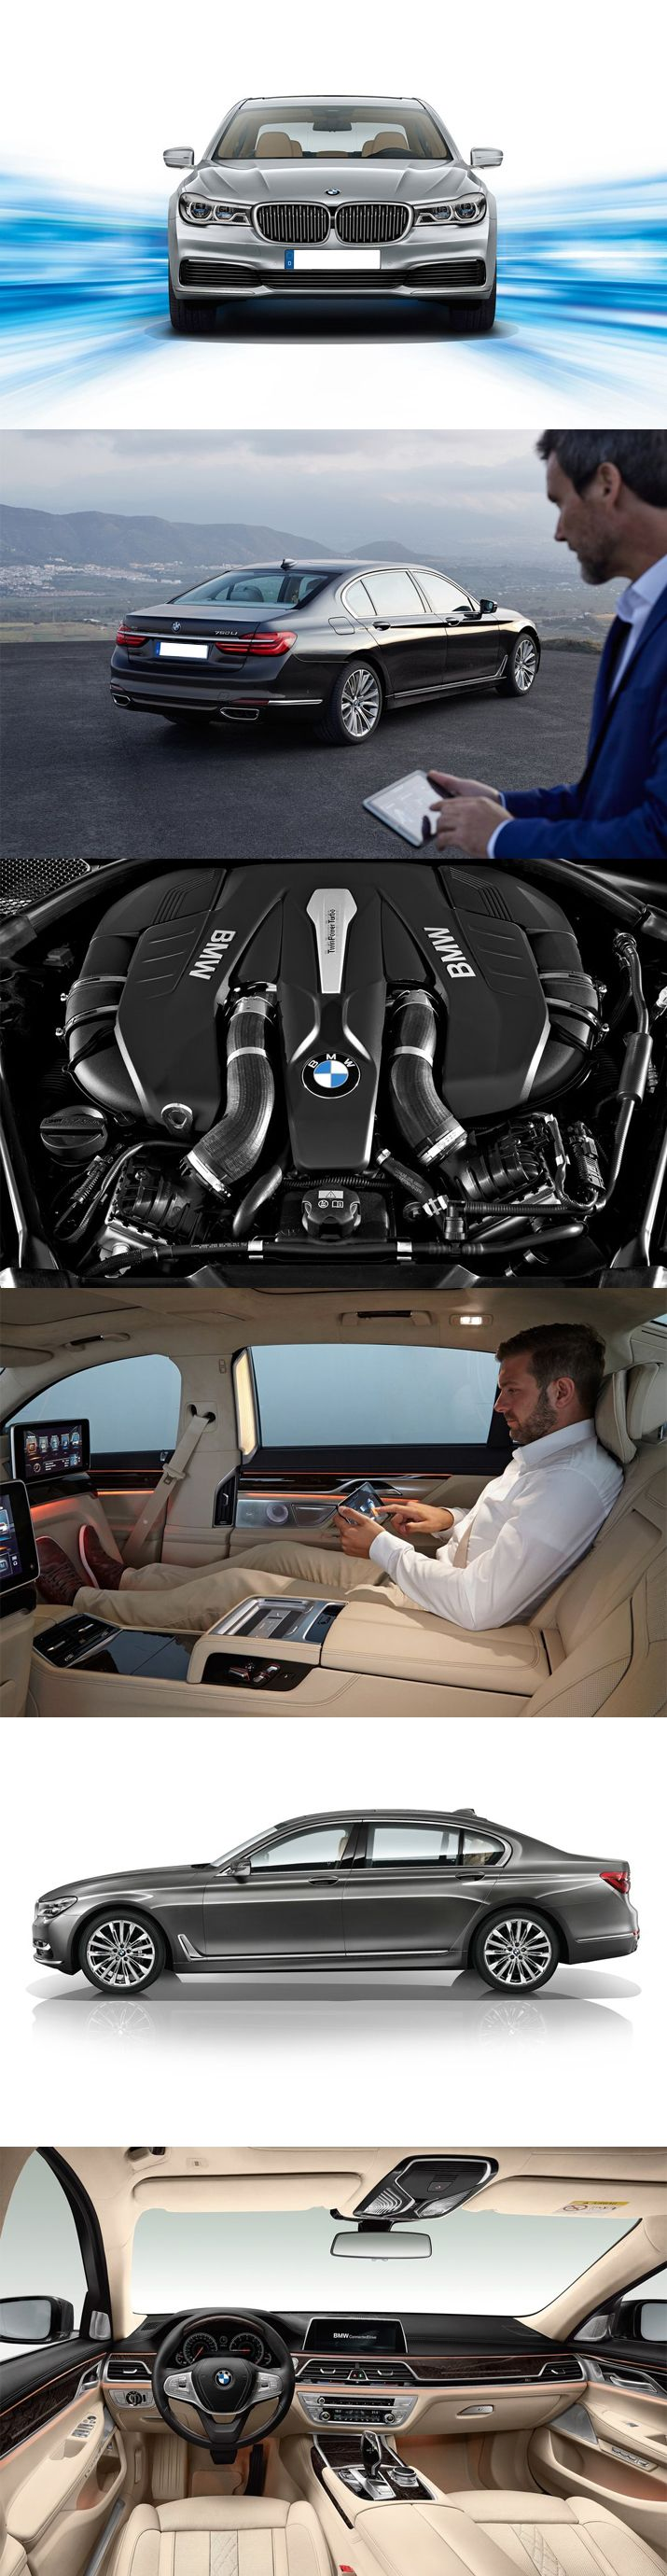 How to be a successful man in life with BMW 7 Series? #BMW7Series http://www.enginefitted.co.uk/blog/successful-man-life-bmw-7-series/